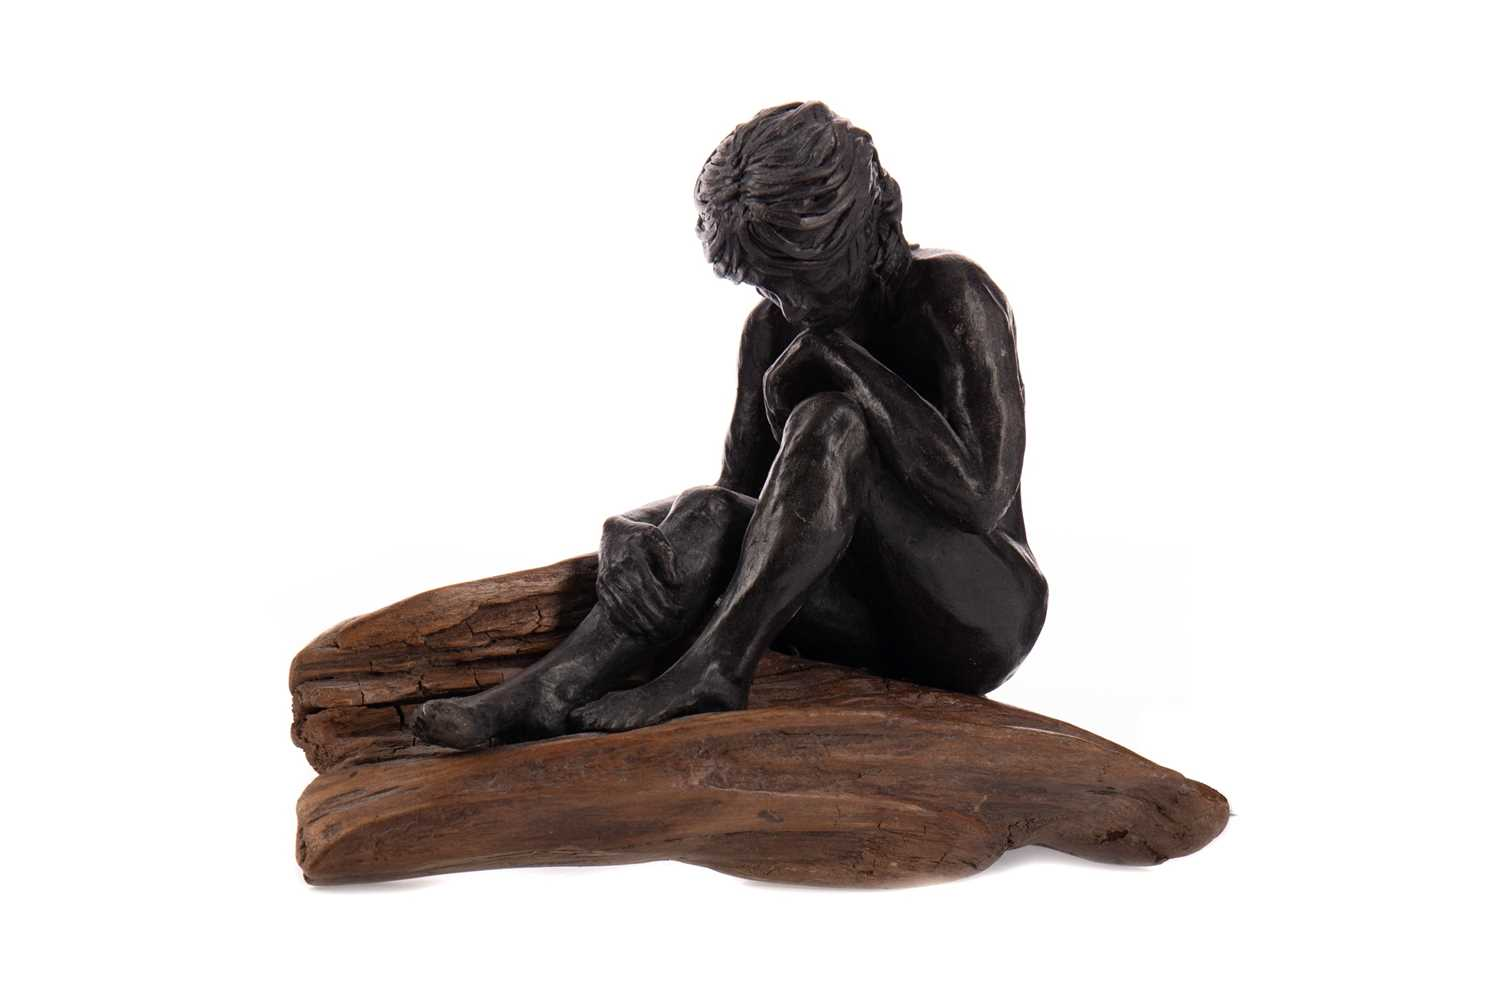 Lot 796 - DEEP IN THOUGHT, A SCULPTURE BY ANNE MORRISON